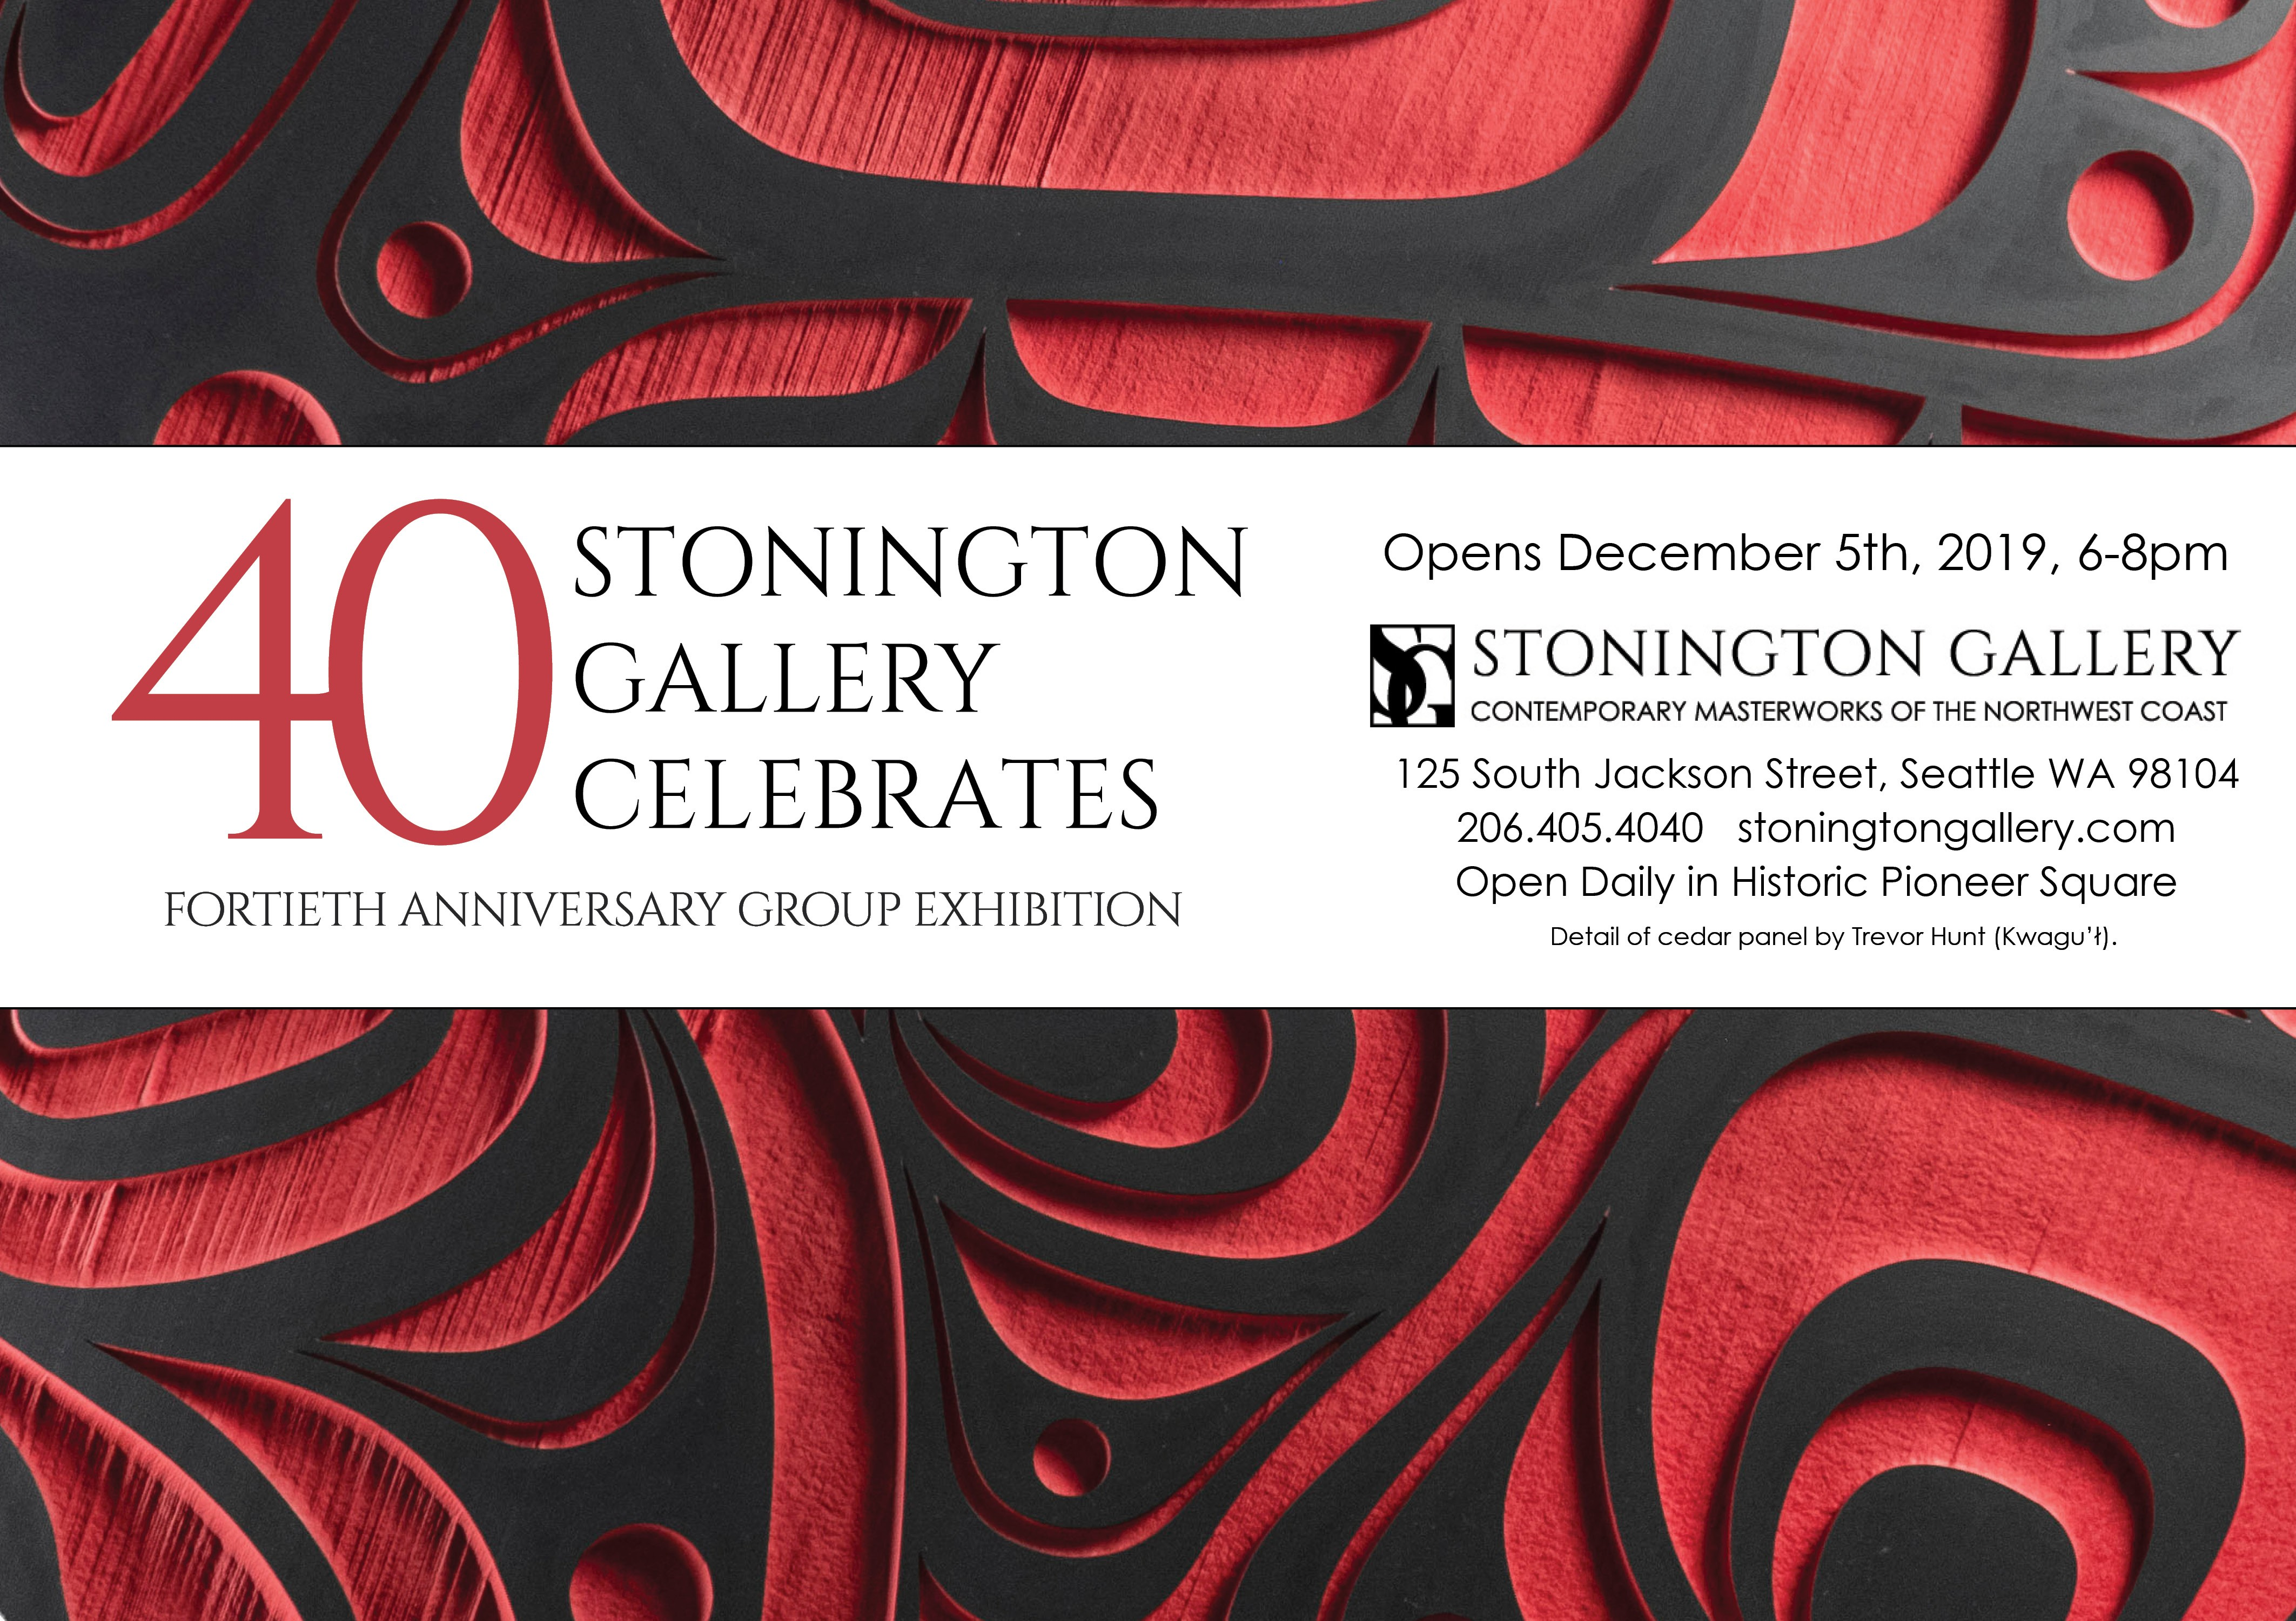 Seattle Events Calendar December 2019 Stonington Celebrates 40: Fortieth Anniversary Group Exhibition at